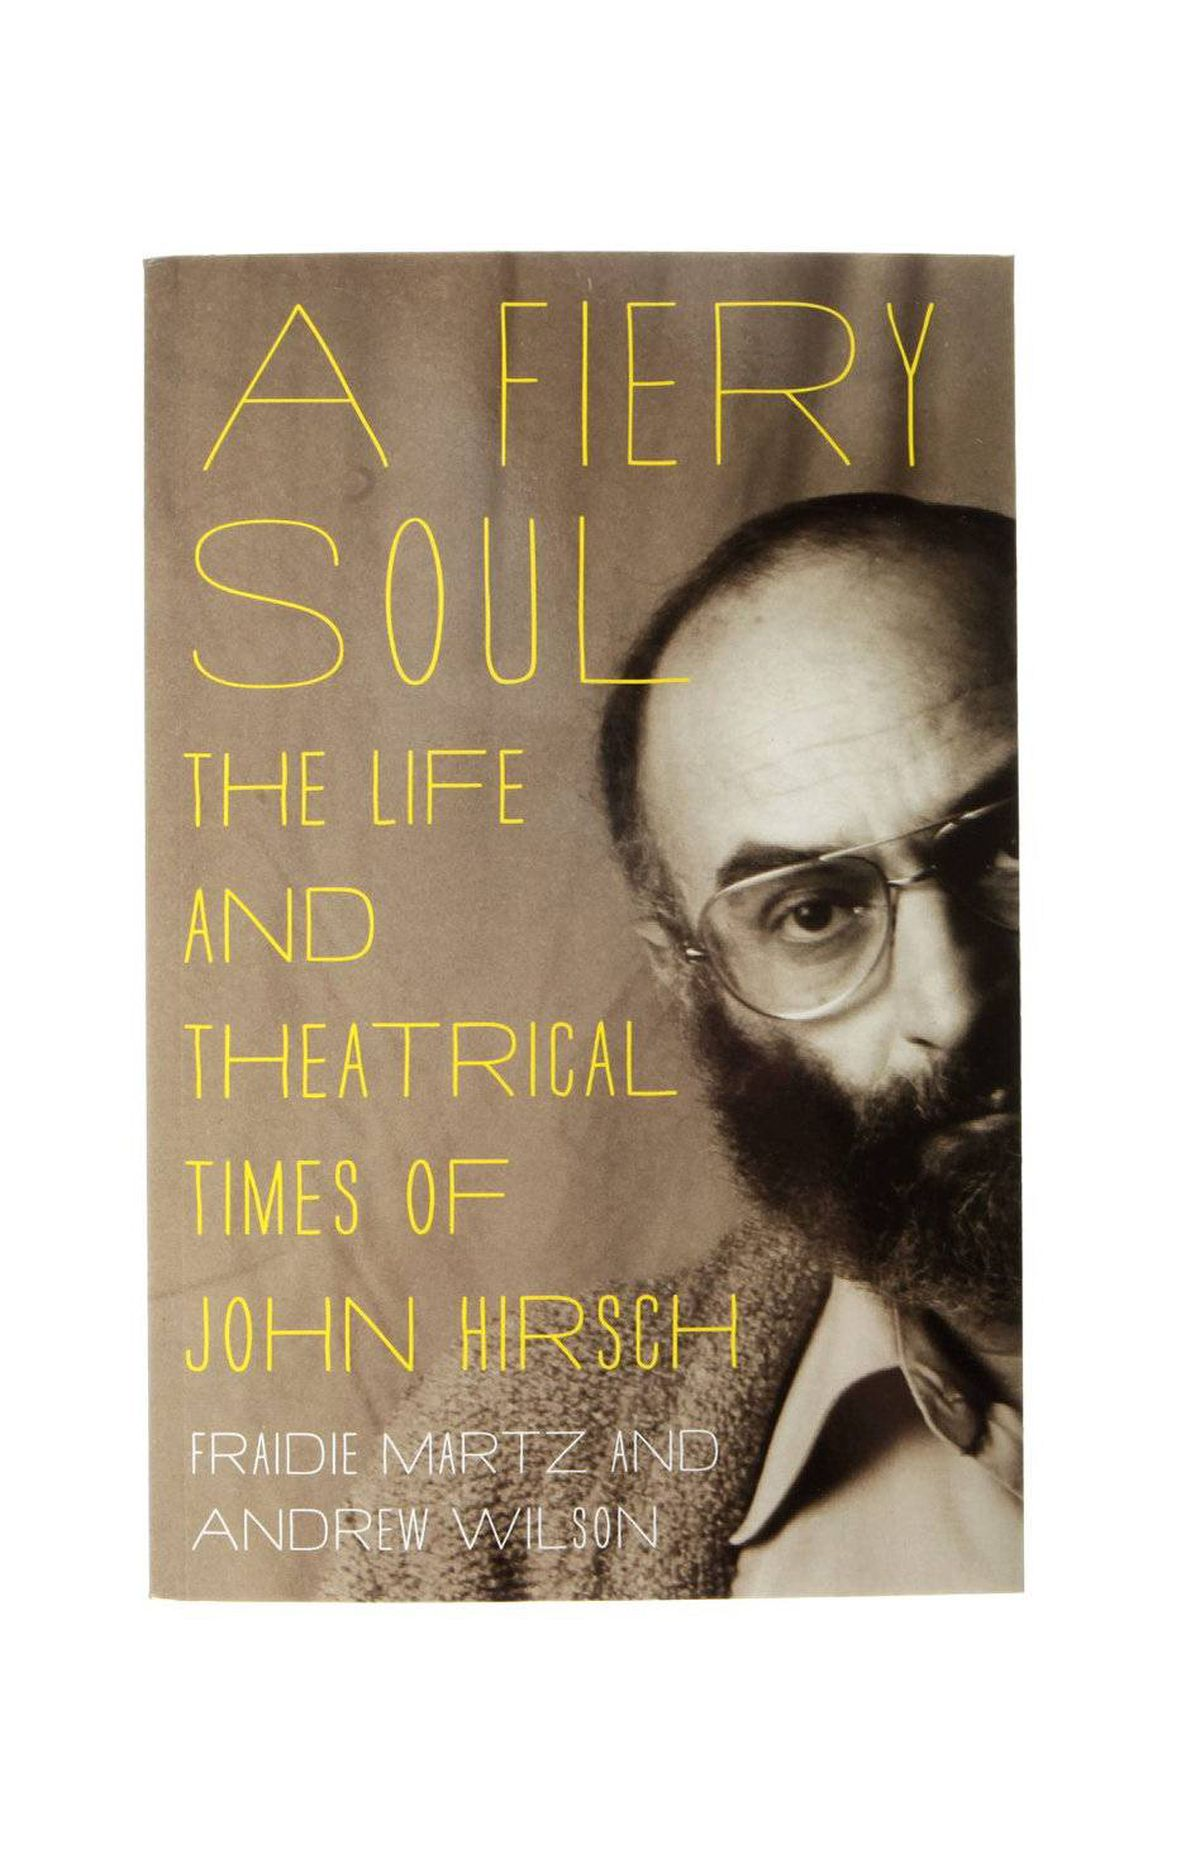 A Fiery Soul: The Life and Theatrical Times of John Hirsch, by Fraidie Martz and Andrew Wilson (Vehicule Press) Ahead of next summer's play about its former artistic director at the Stratford Shakespeare Festival, brush up on the life of one of the country's greatest artists and nation-builders. An orphan of the Holocaust, Hirsch co-founded the Manitoba Theatre Centre and directed from Stratford to Broadway, before dying of AIDS in 1989. $22 at www.theatrebooks.com